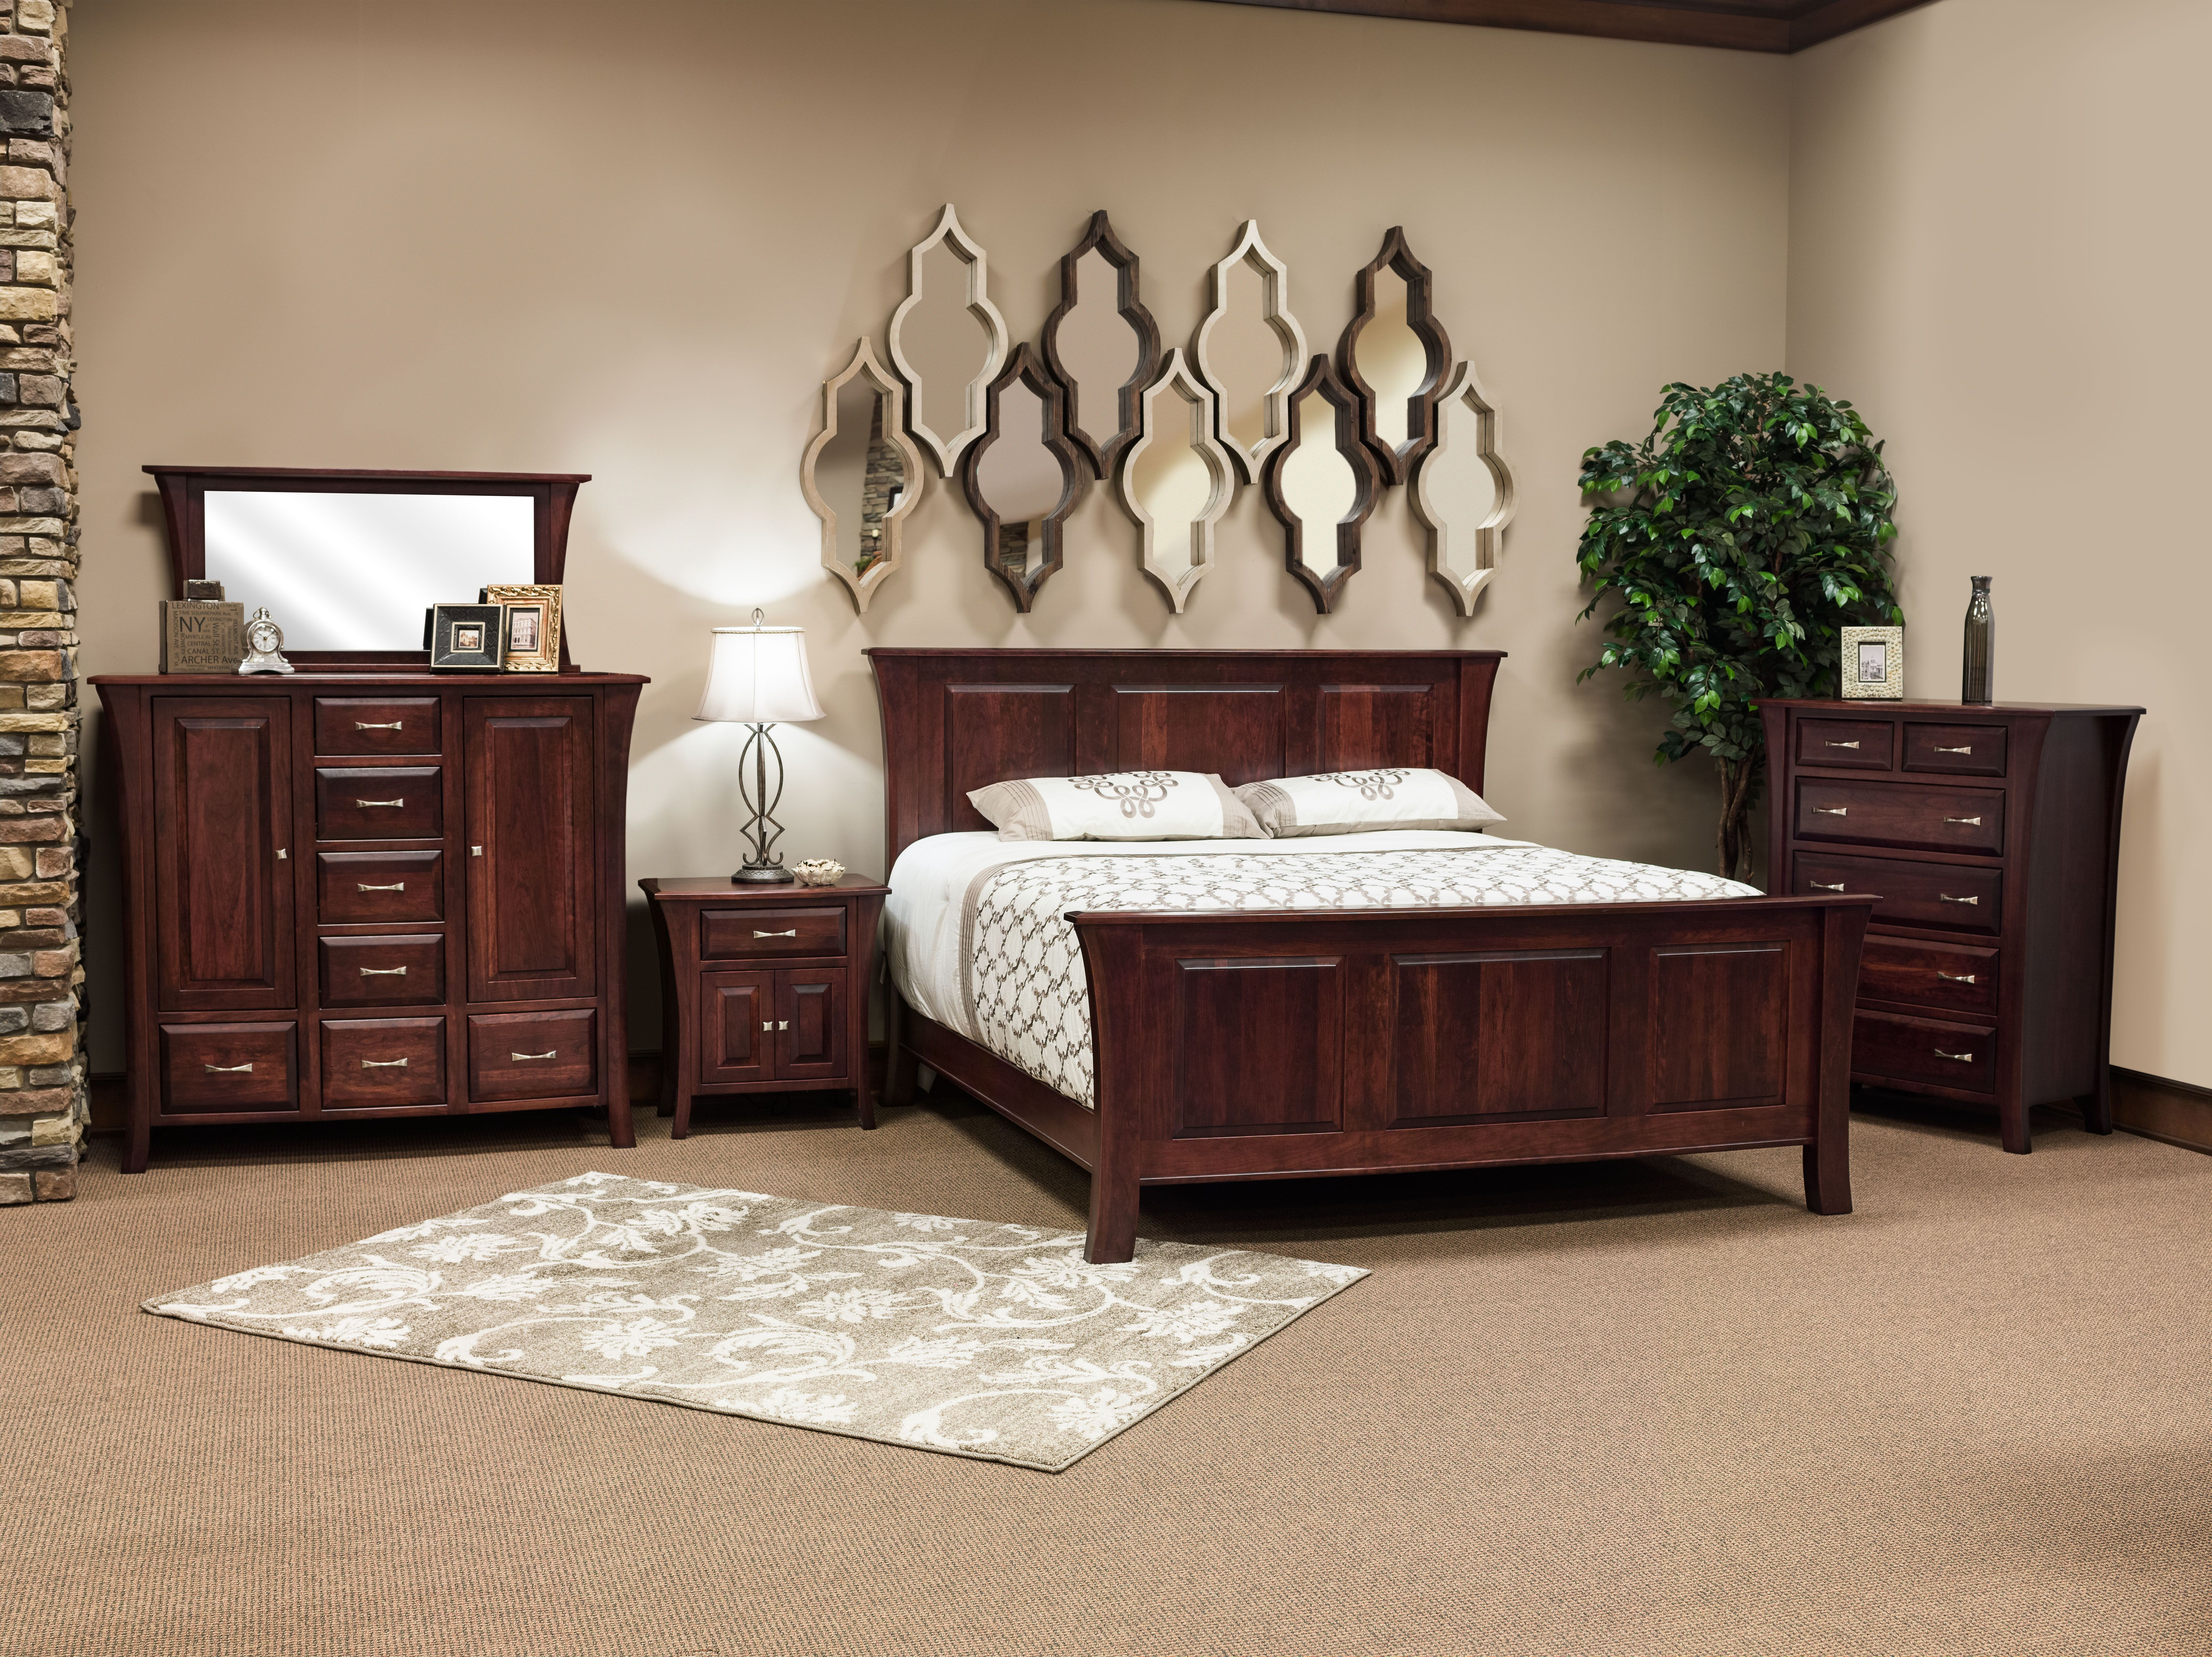 Pin by amish crafted furniture on bedroom pinterest amish crafts